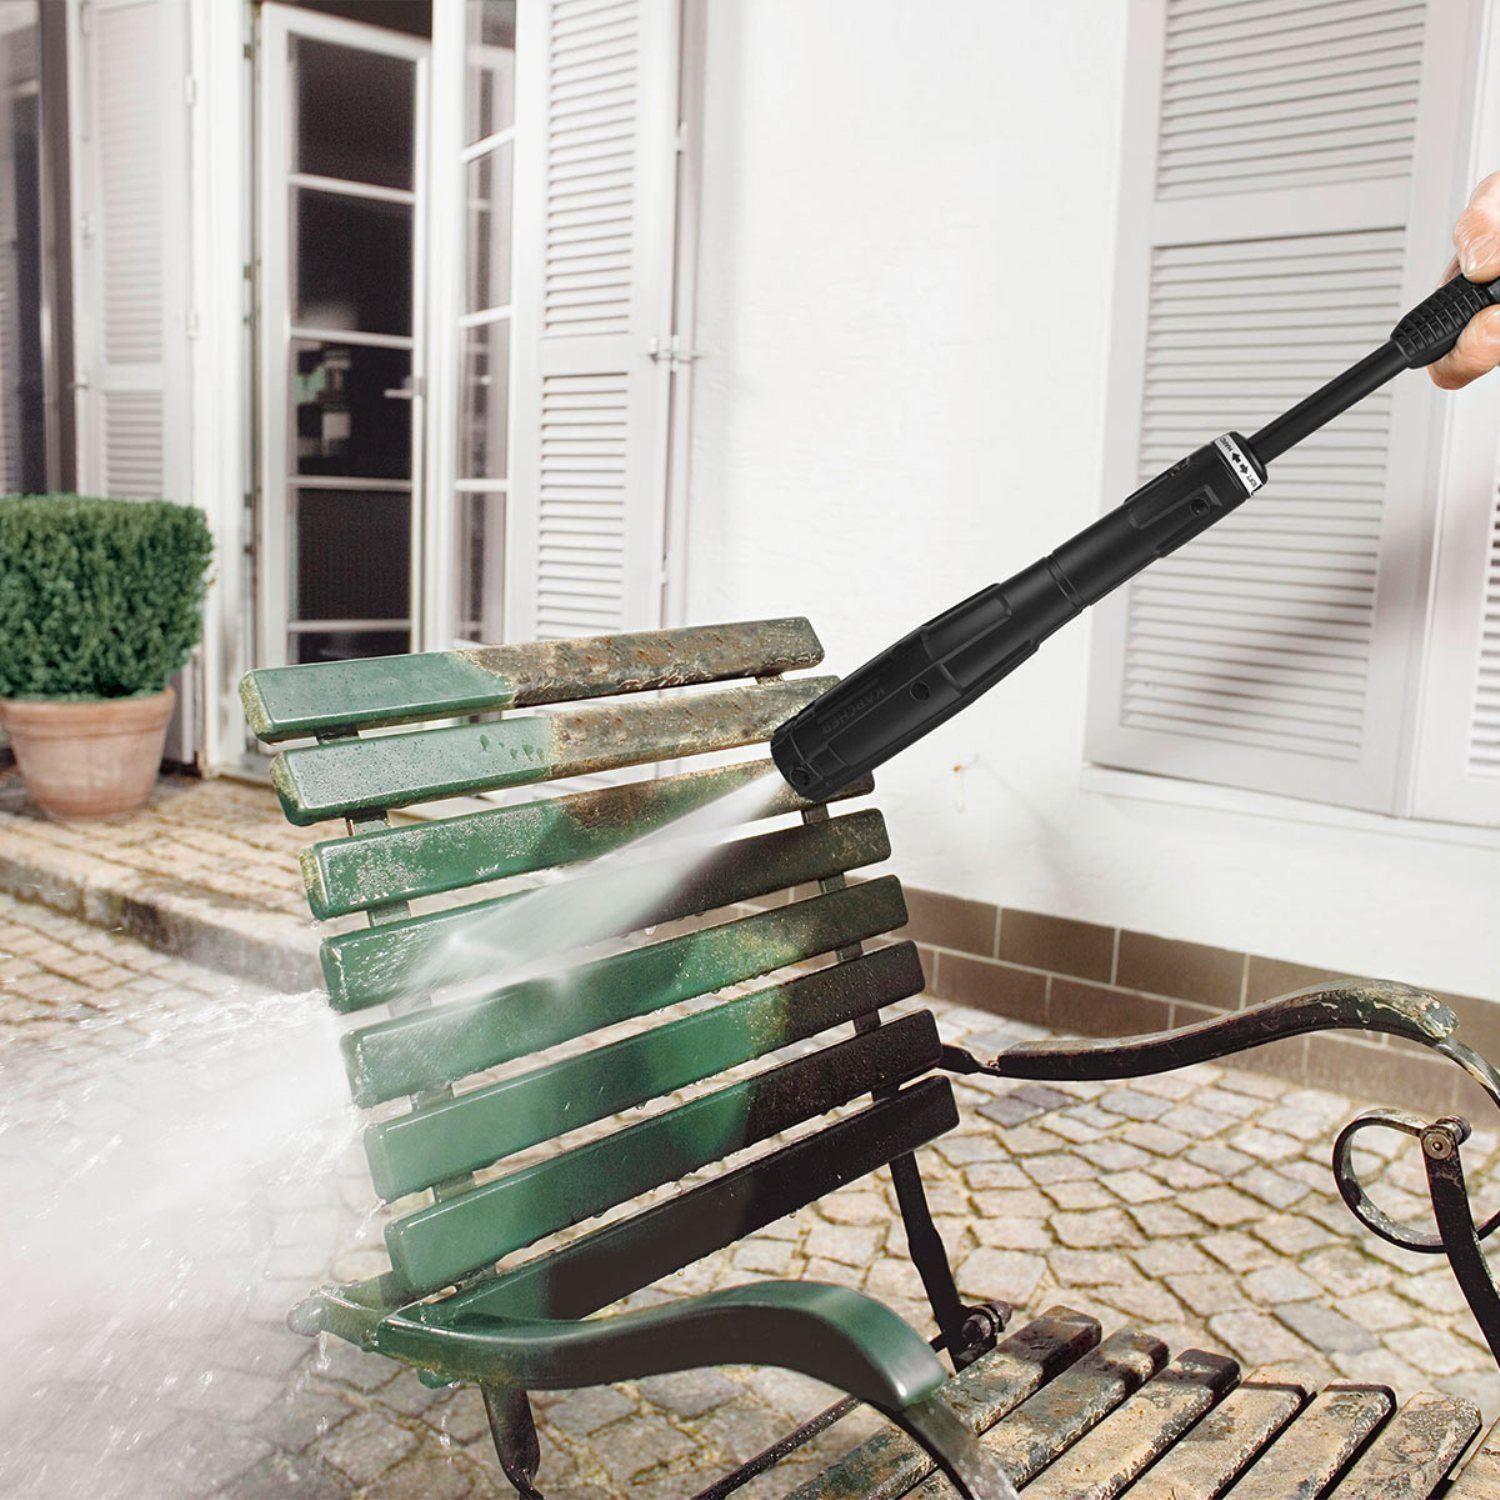 Best Pressure Washers For Cars: Reviewed, Rated & Compared